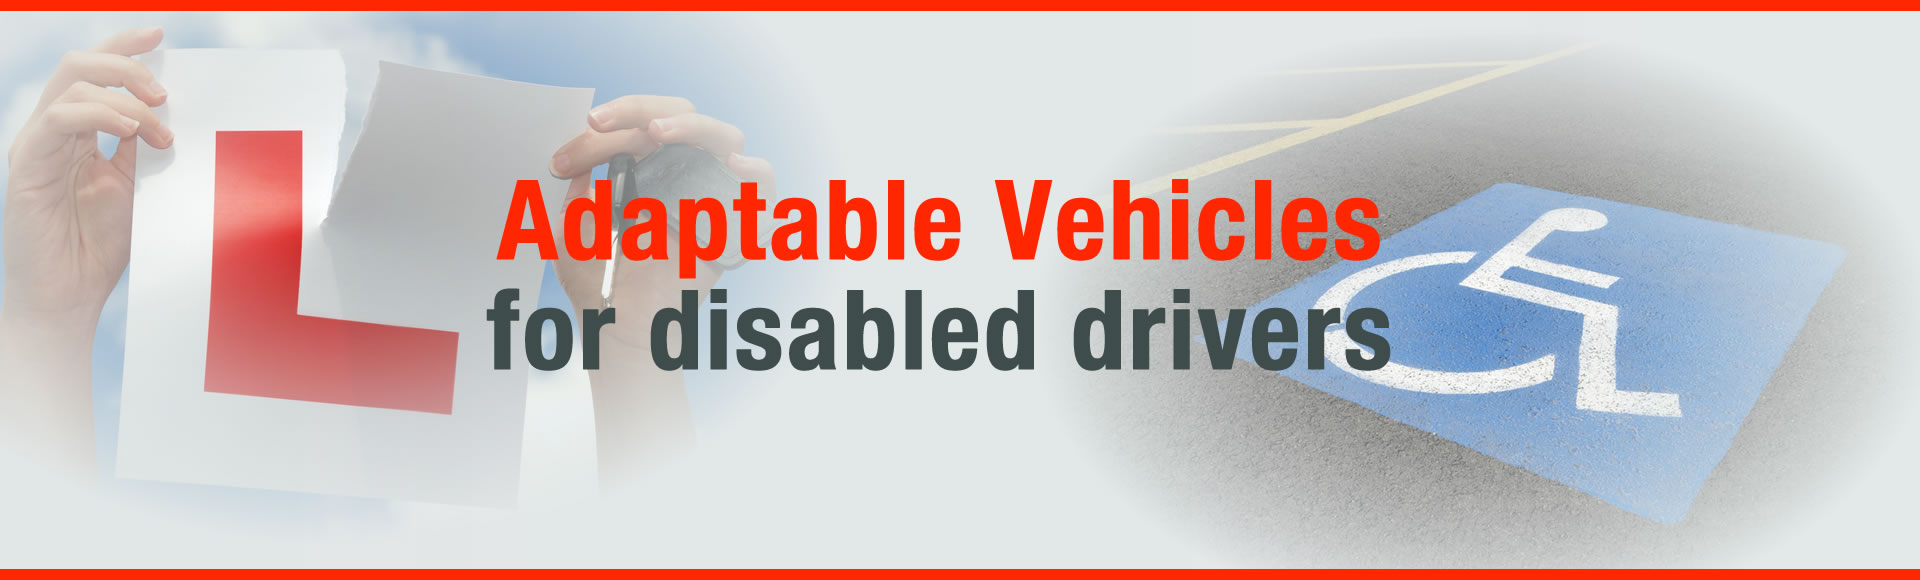 adaptable-vehicles-for-disabled-drivers2